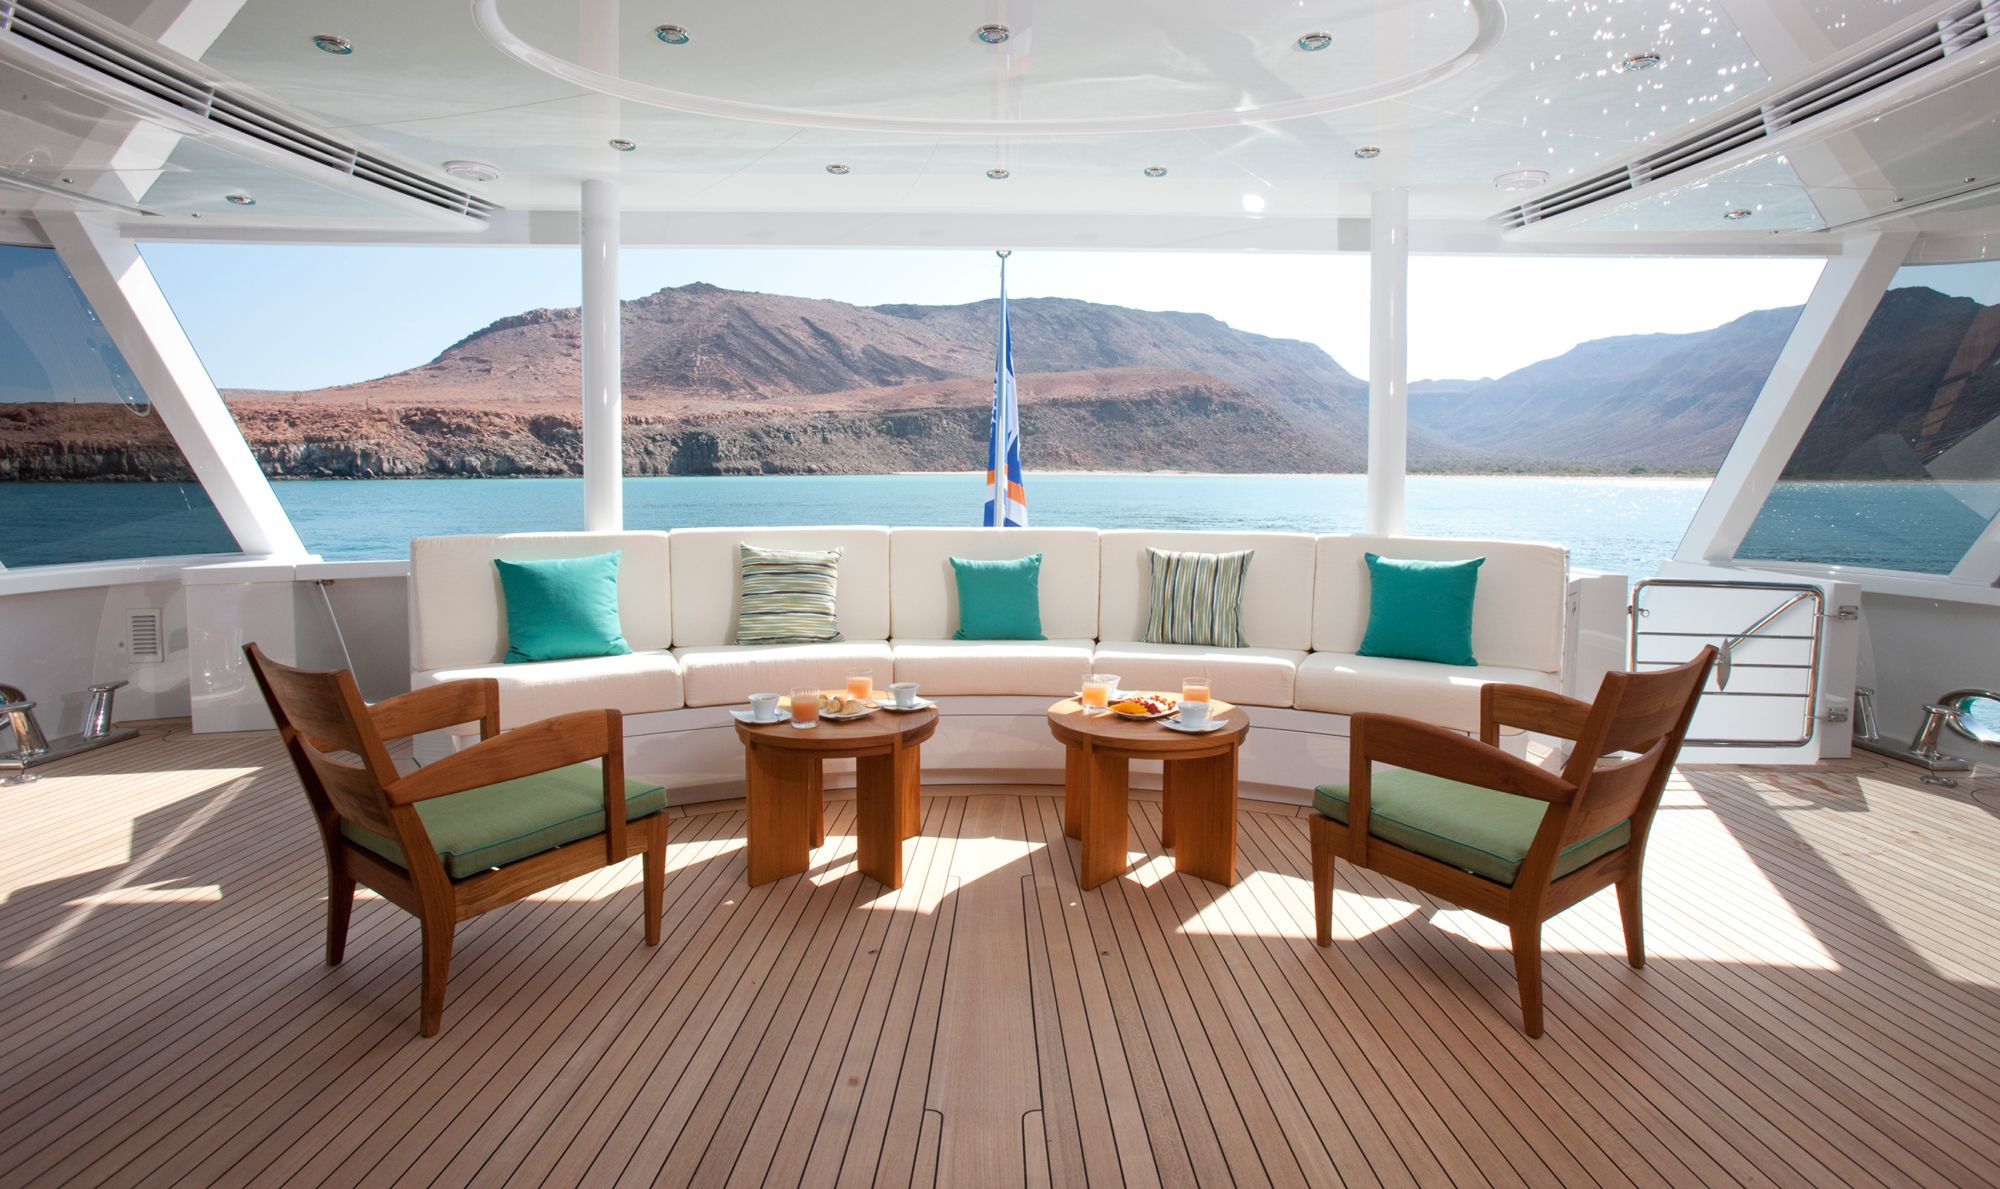 boat composite wood decking material malaysia, outdoor